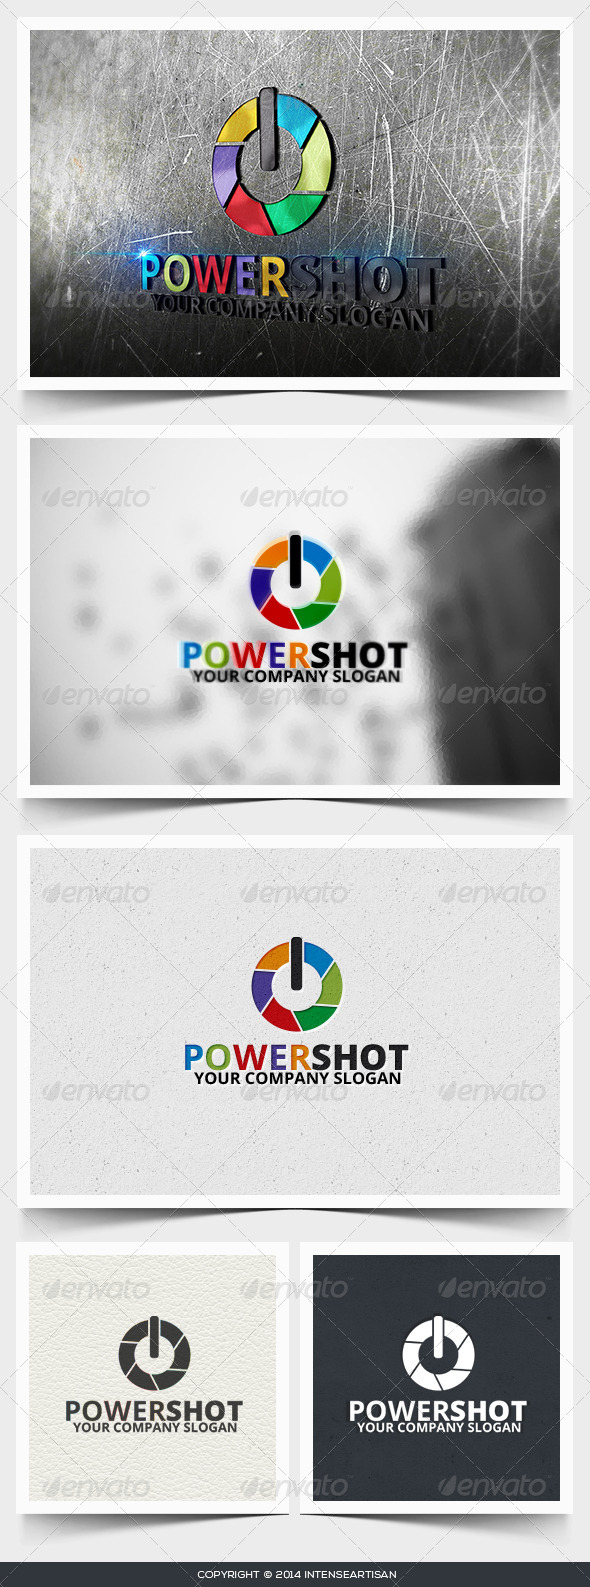 Power Shot Logo Template